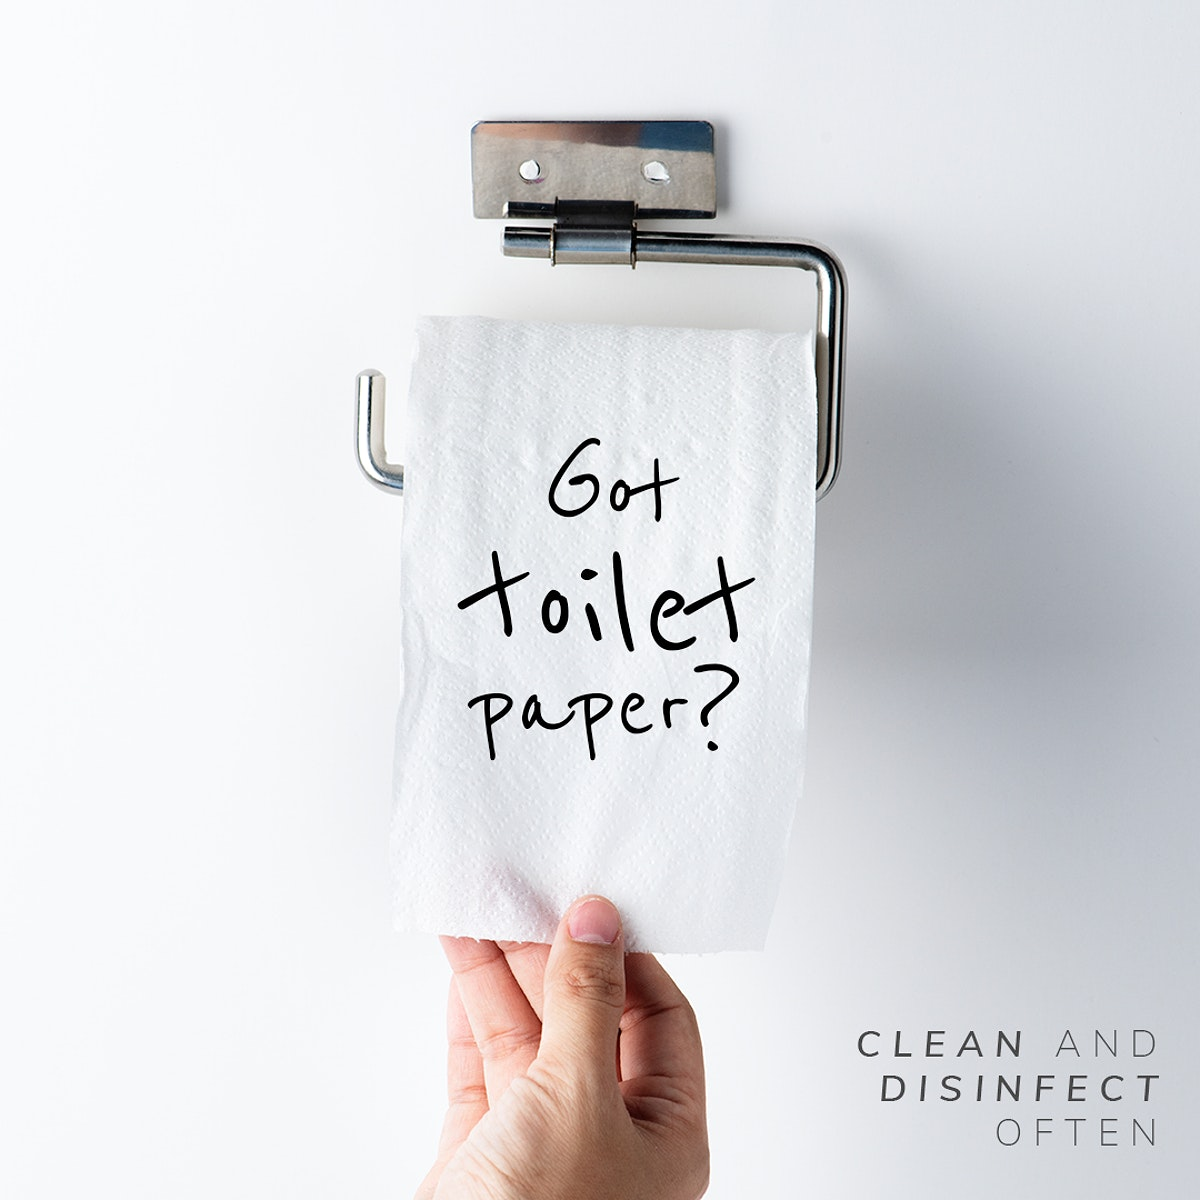 Got toilet paper? Clean and disinfect often during the global covid-19 pandemic